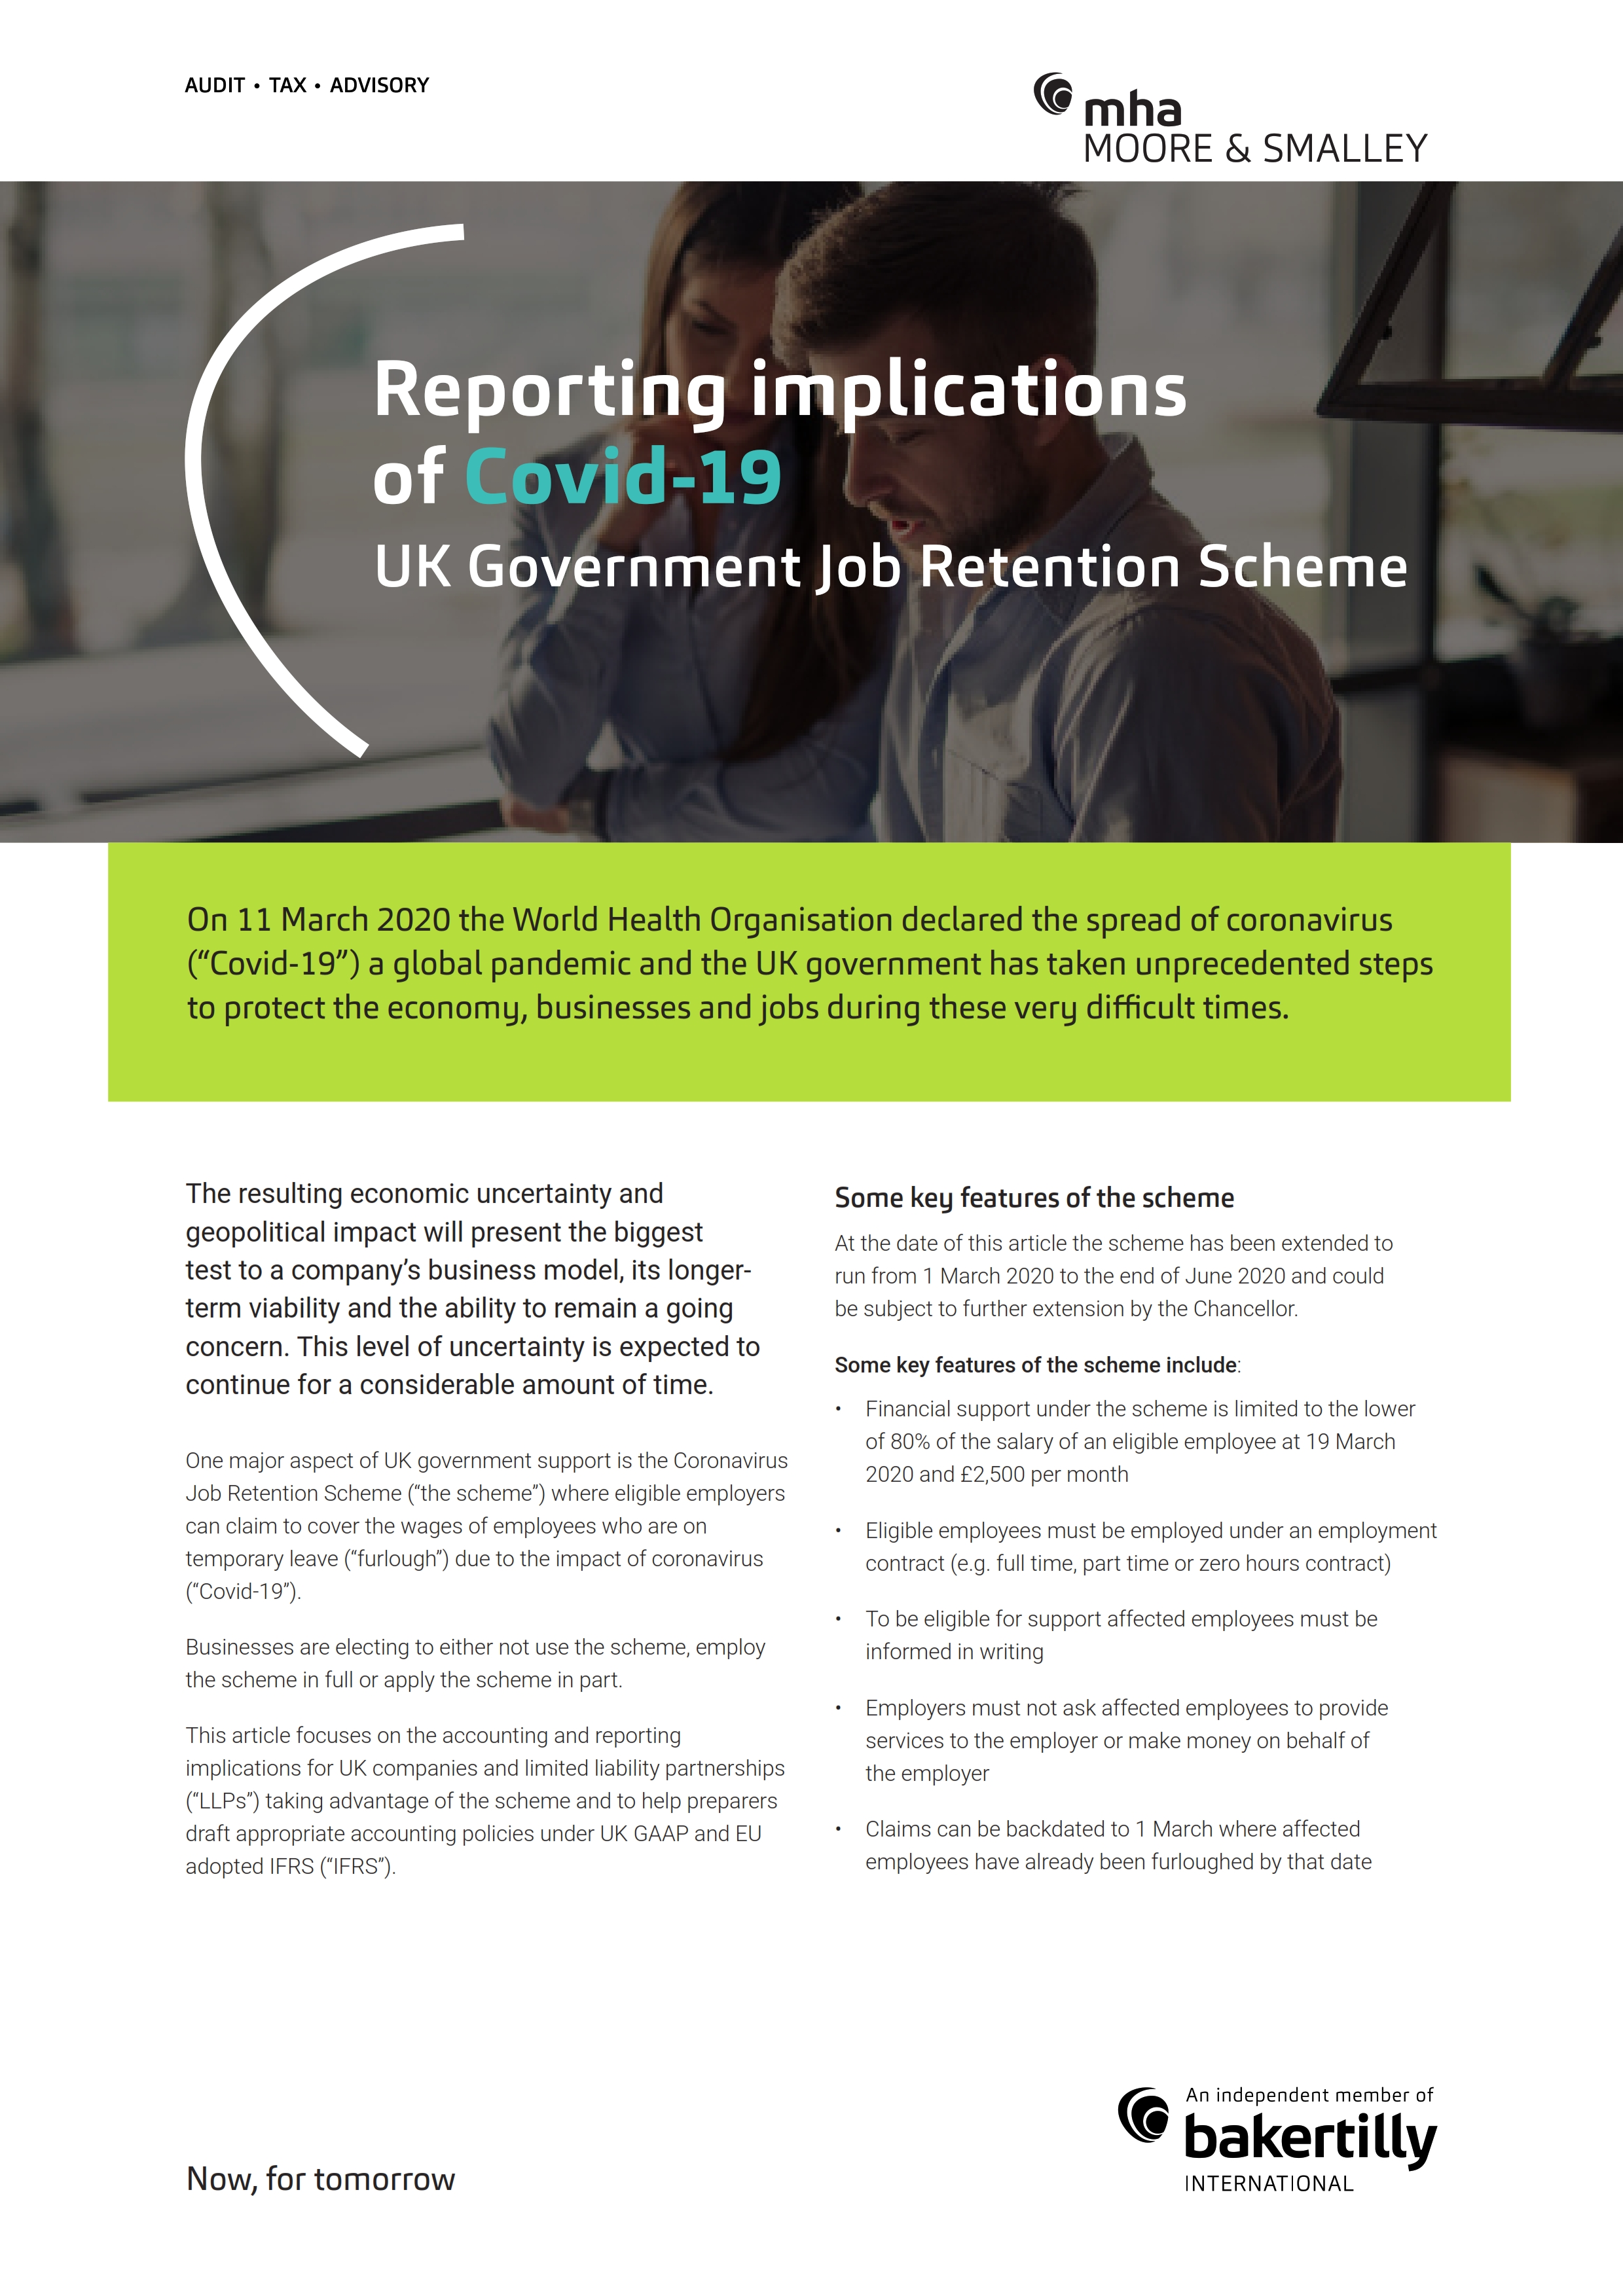 Reporting implications of Covid-19 UK Government Job Retention Scheme